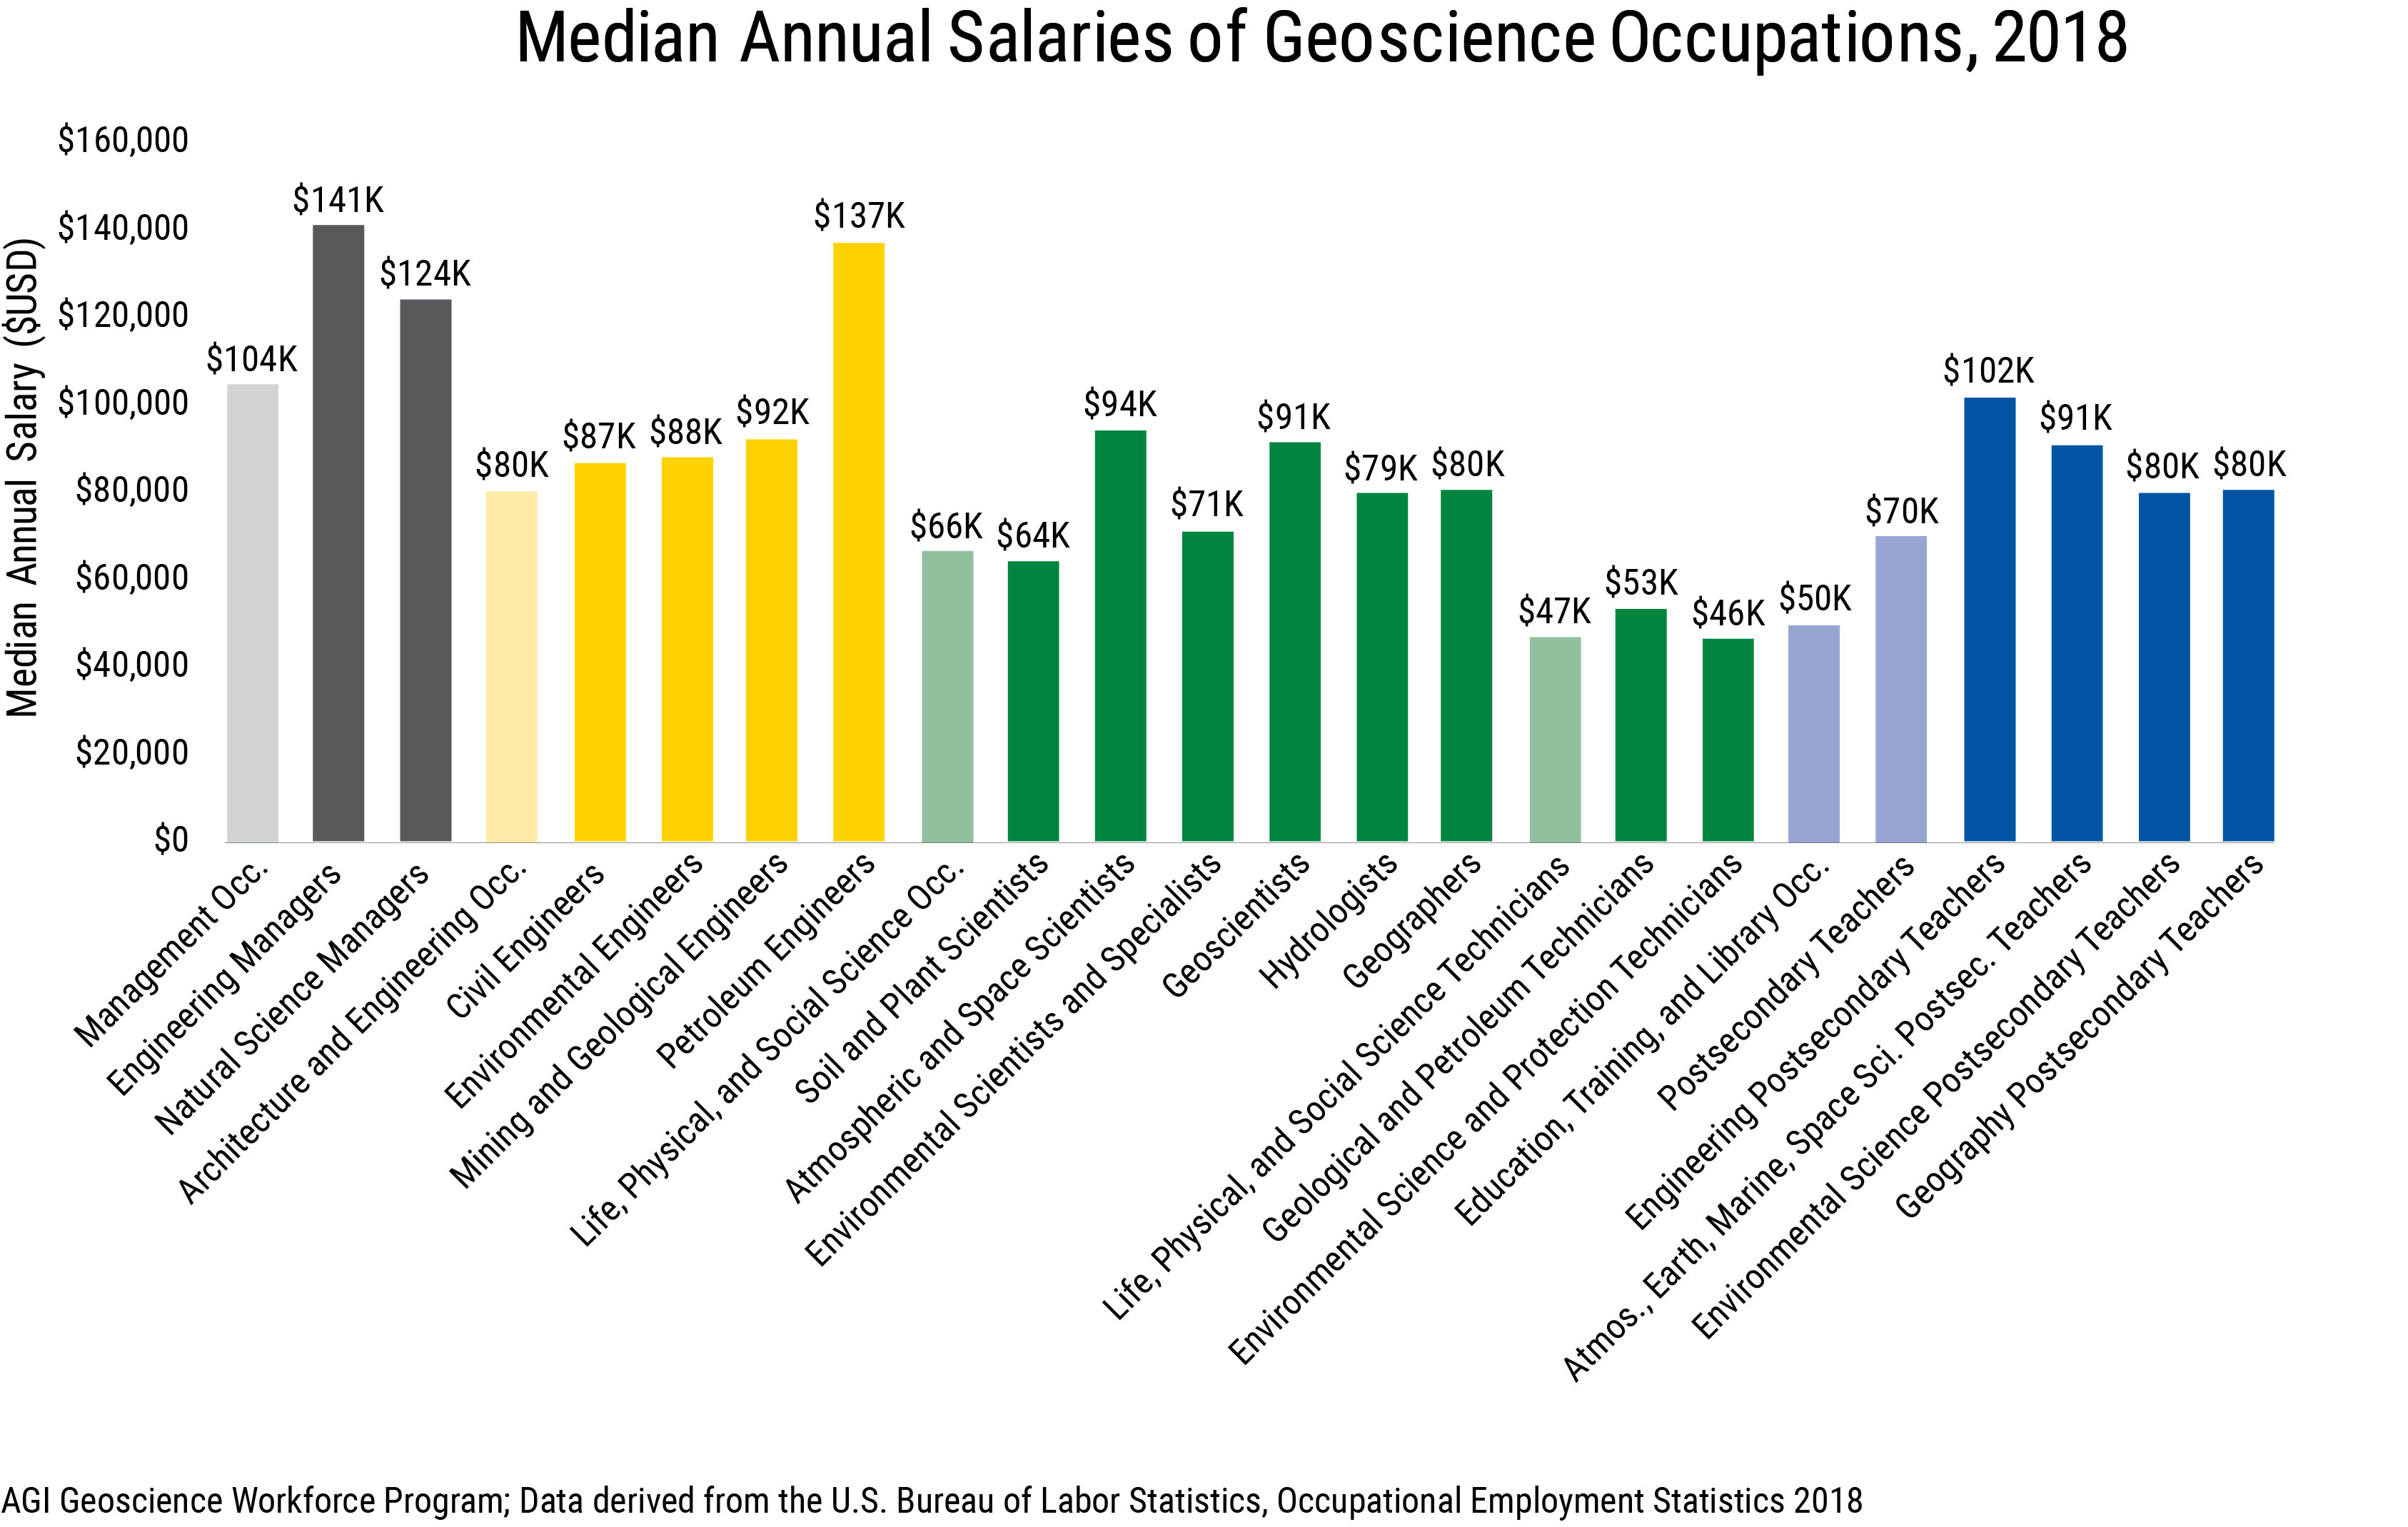 Median Annual Salaries of Geoscience Occupations, 2018. Credit: AGI